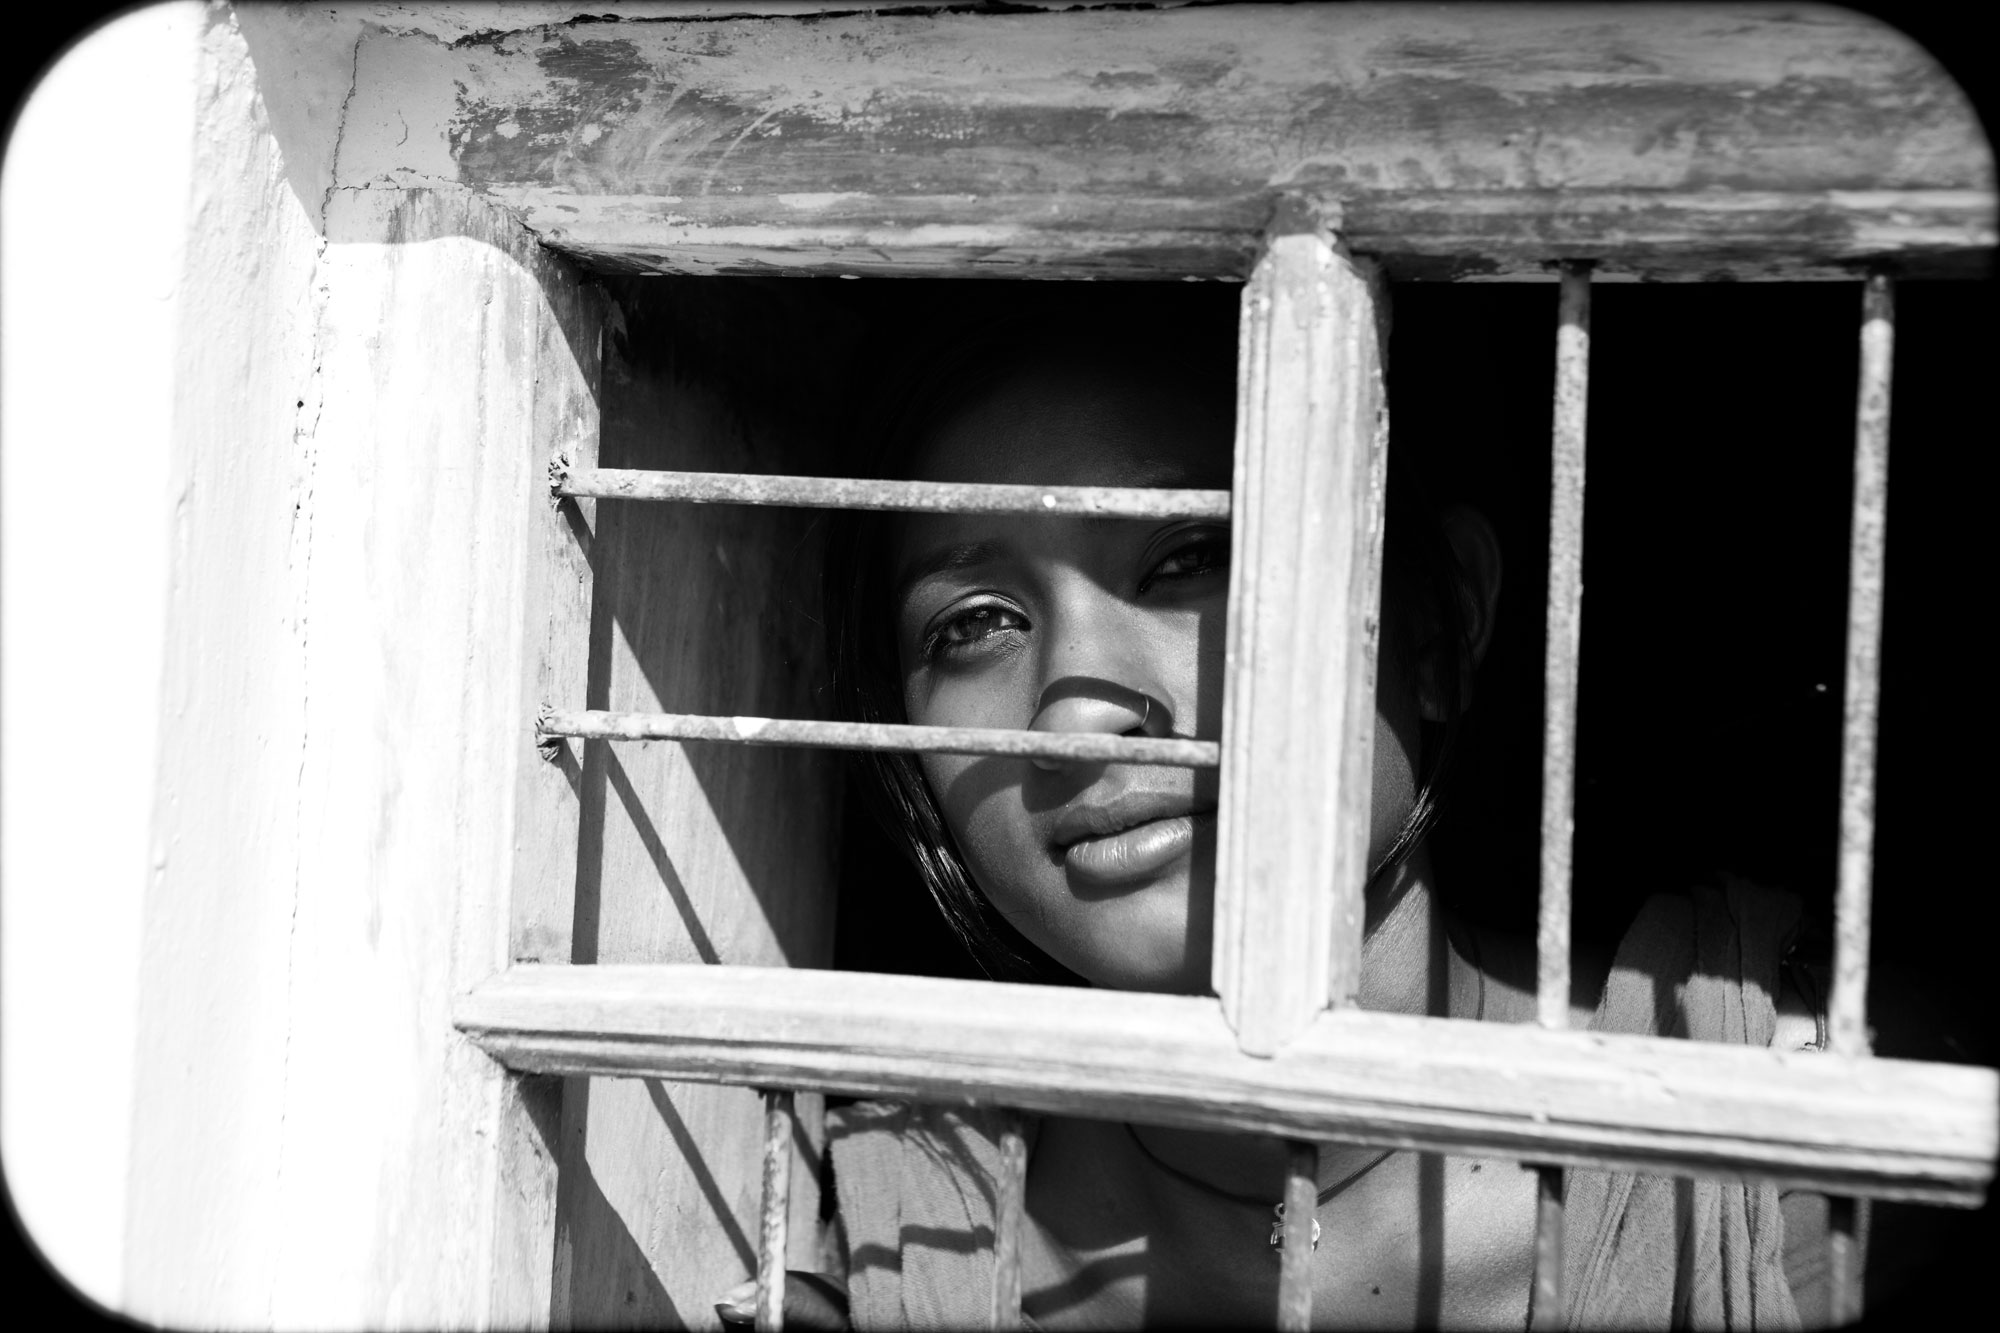 An Indian woman looking out from behind window bars